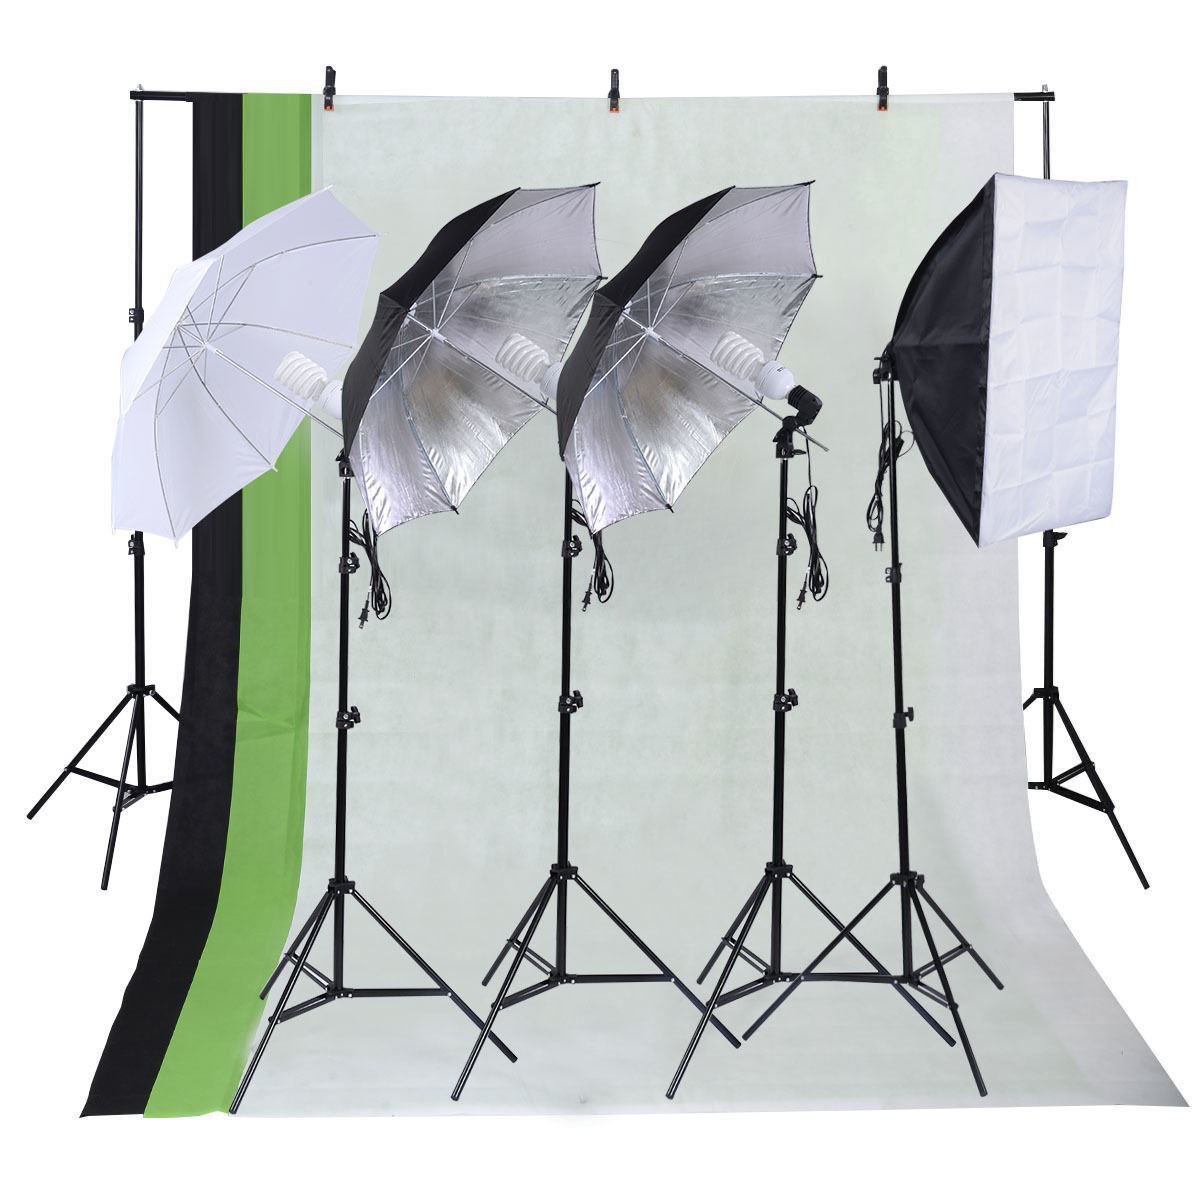 Picture of Photo Studio Photography Kit with Backdrop Stand Sets 3 Umbrella Muslin and 4 Light Bulb